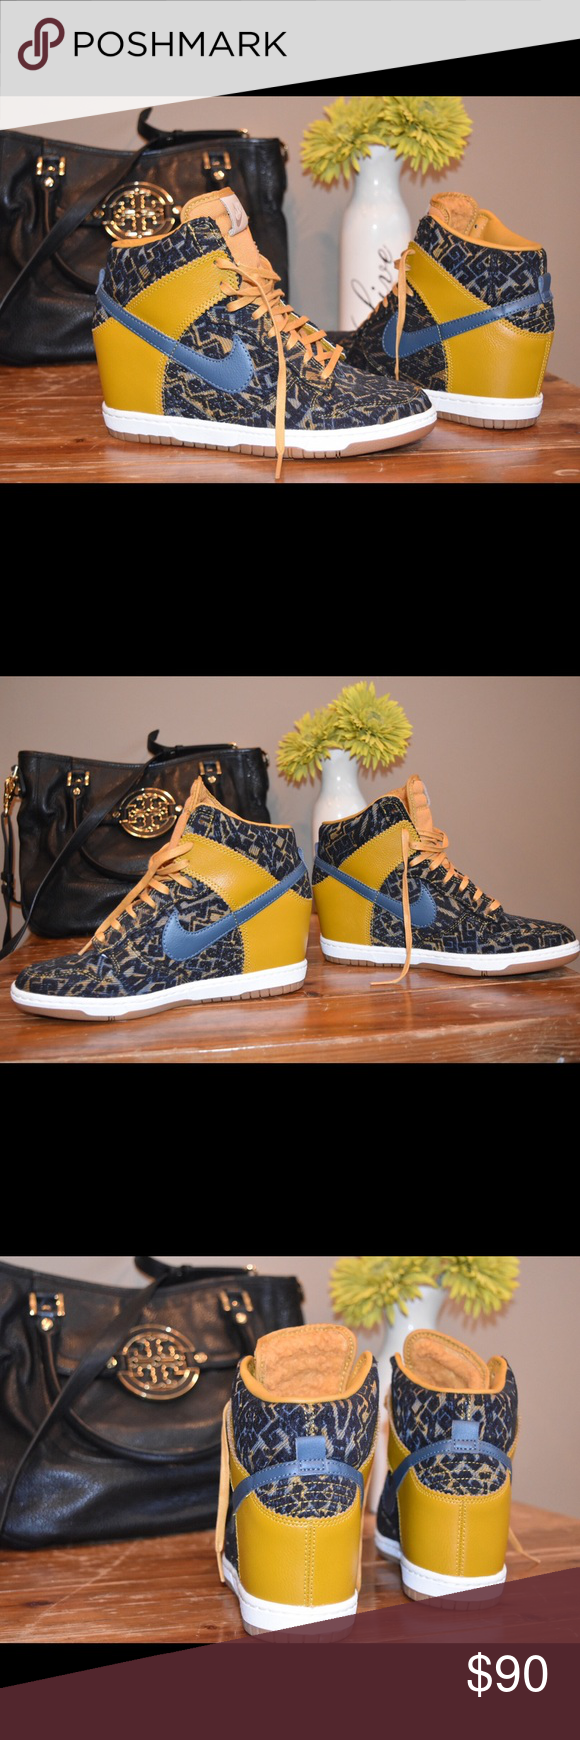 Size NIKE WMNS DUNK SKY HI TXT dunk sky high textile 644,410 001 that Nike in heel sneakers higher frequency elimination Lady's has a big